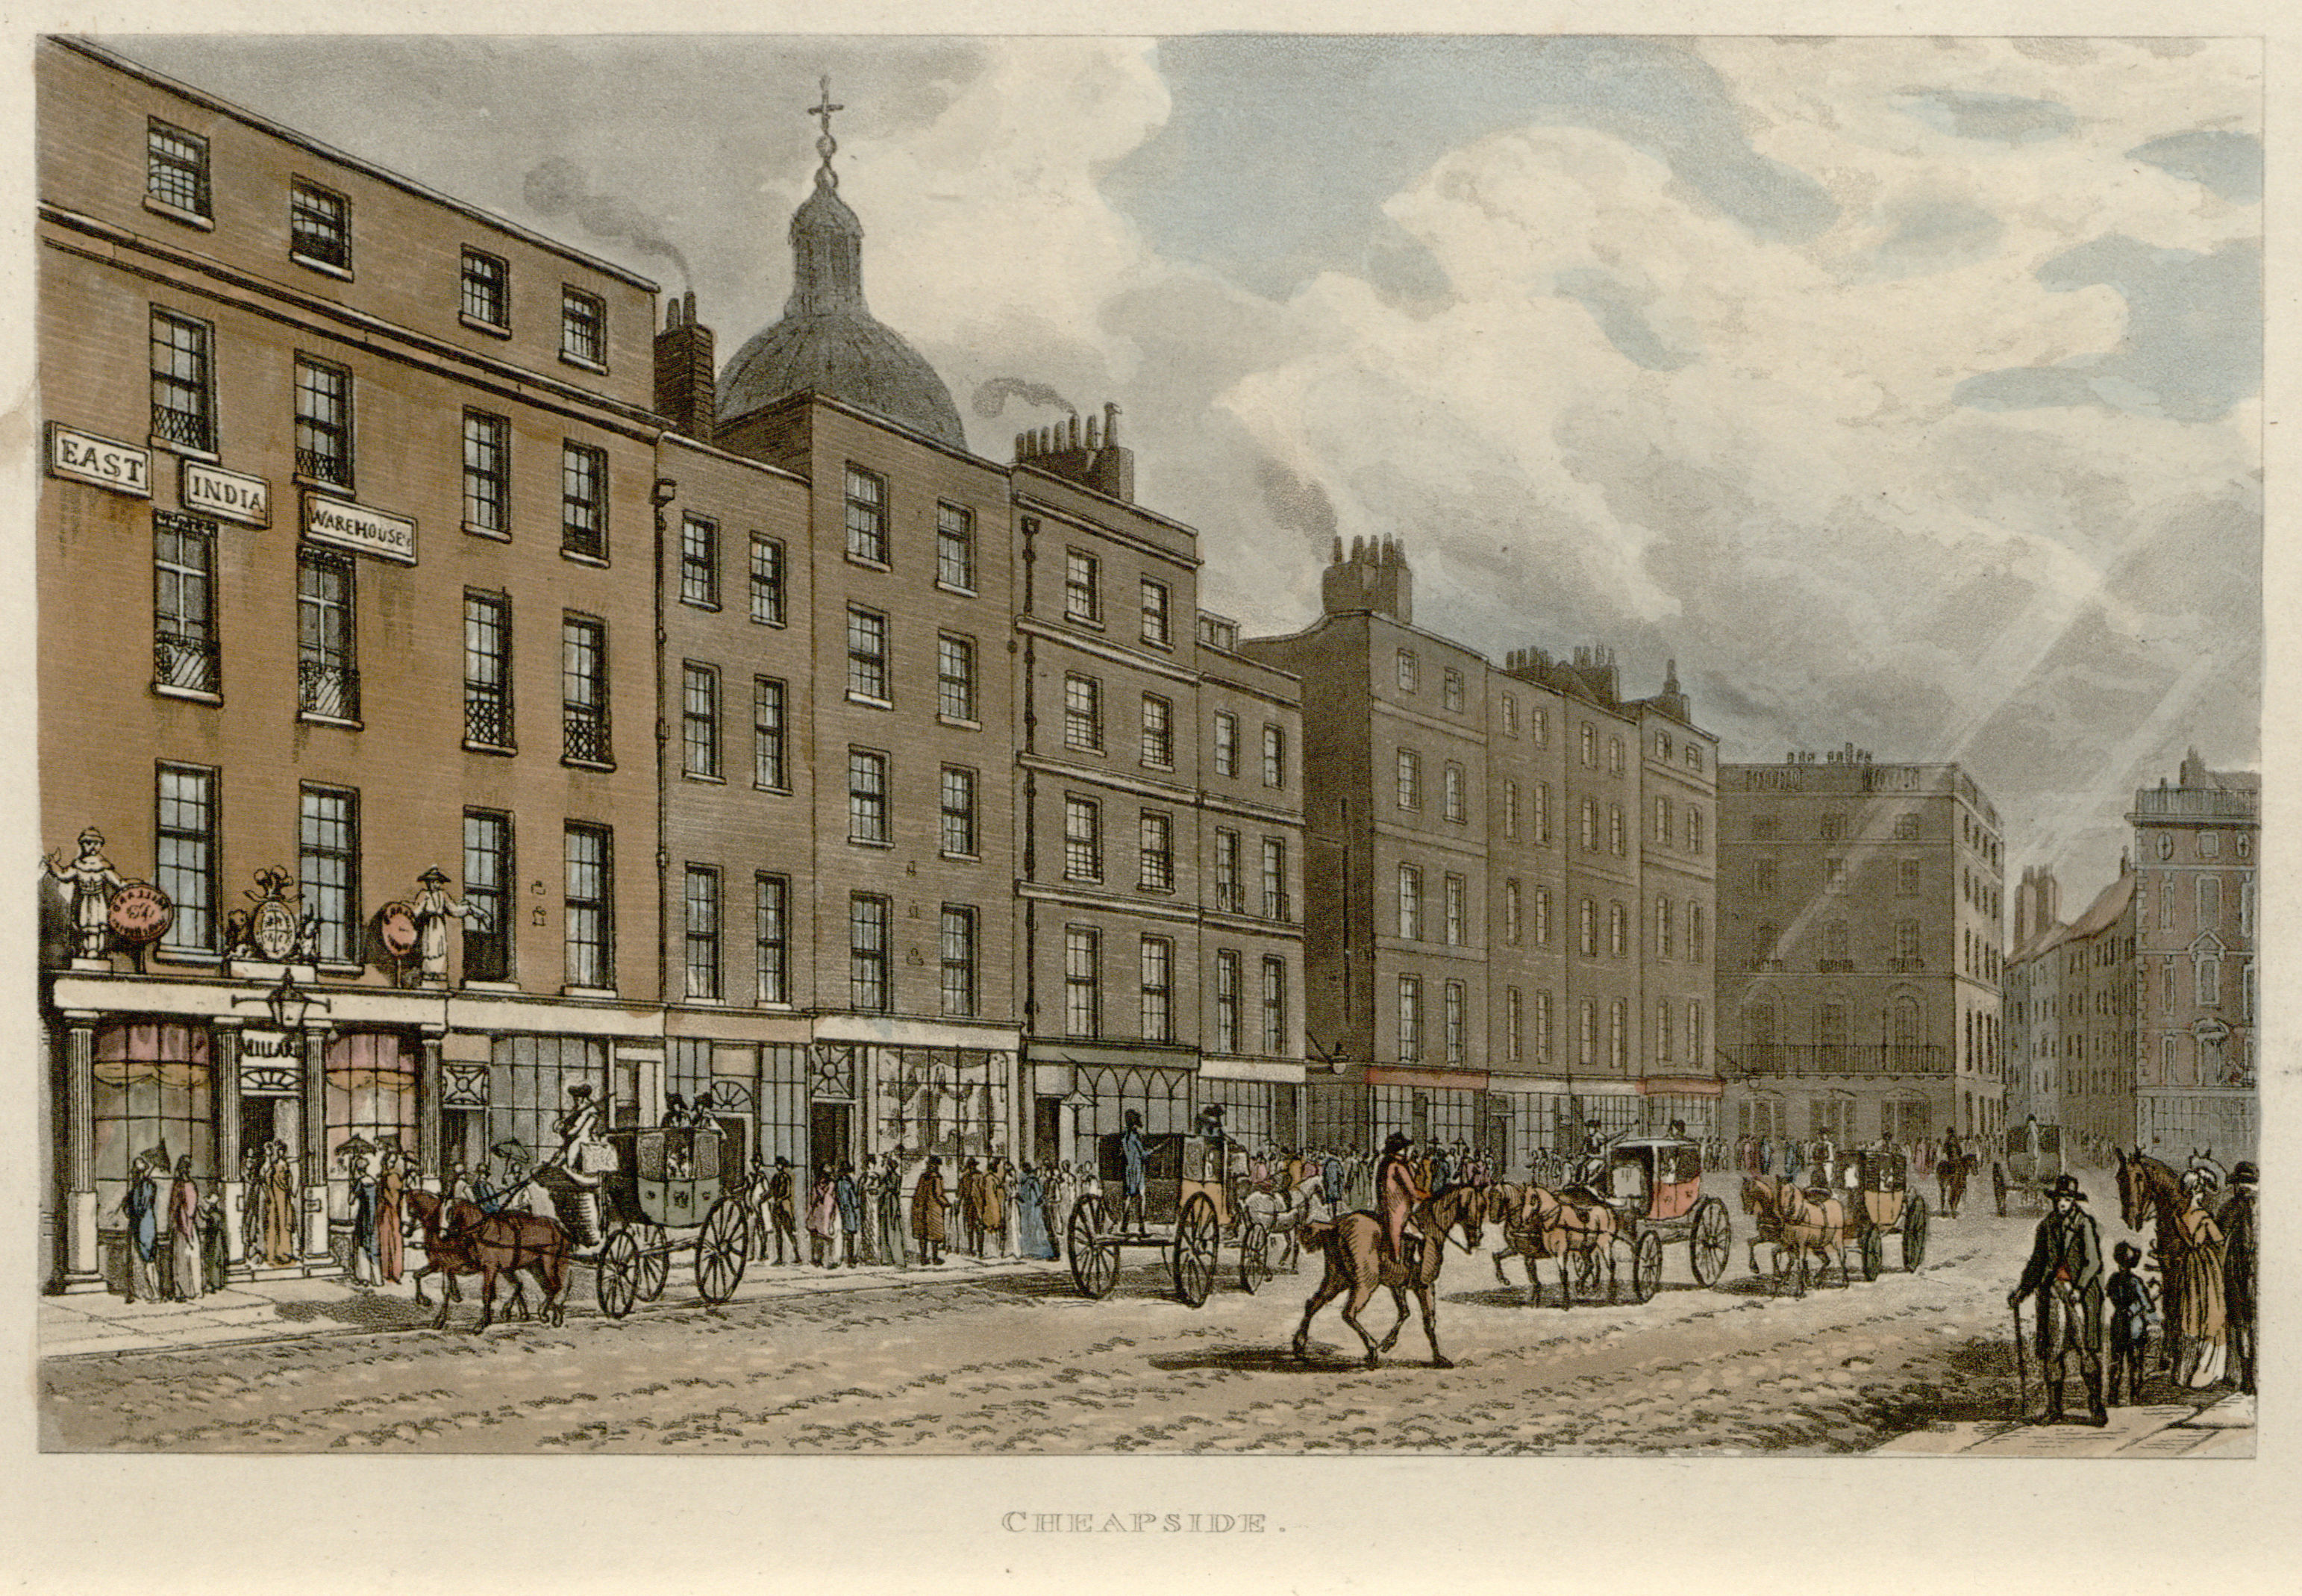 Cheapside, from Select Views of London, published by Rudolf Ackermann, 1816. Click to enlarge.